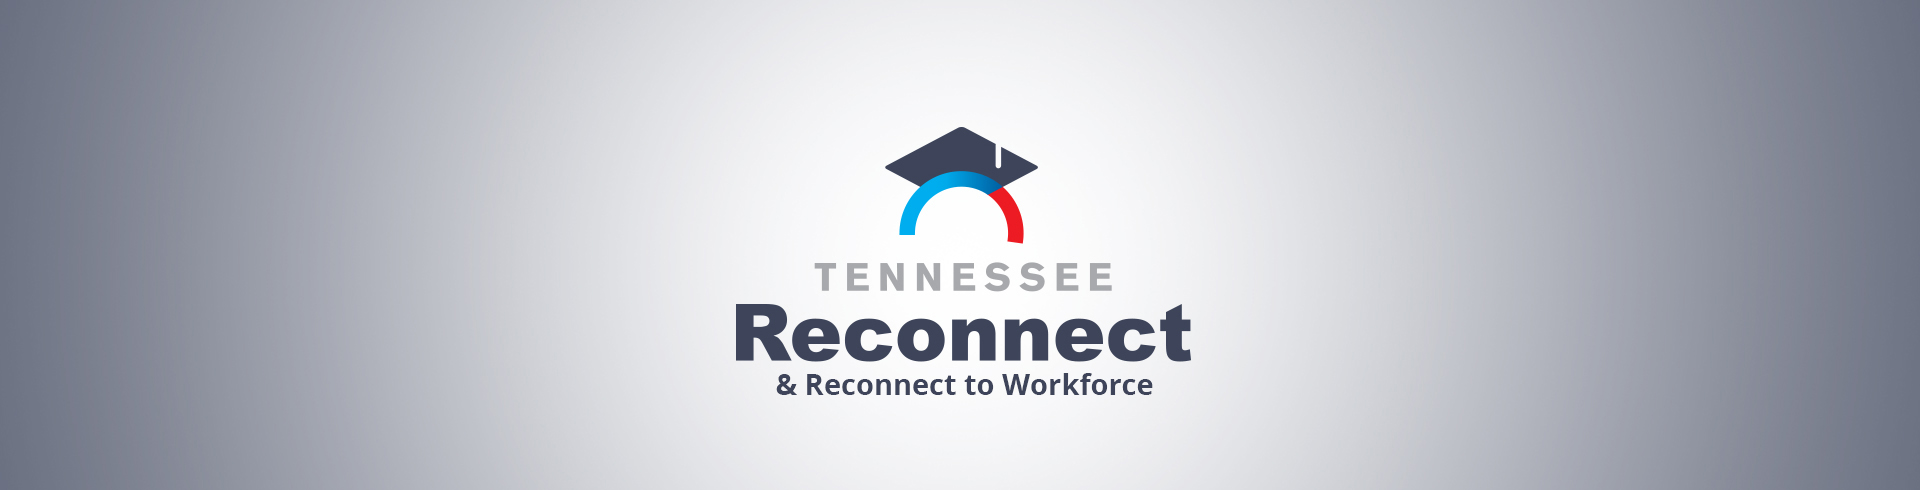 tnreconnect & reconnect to workforce banner